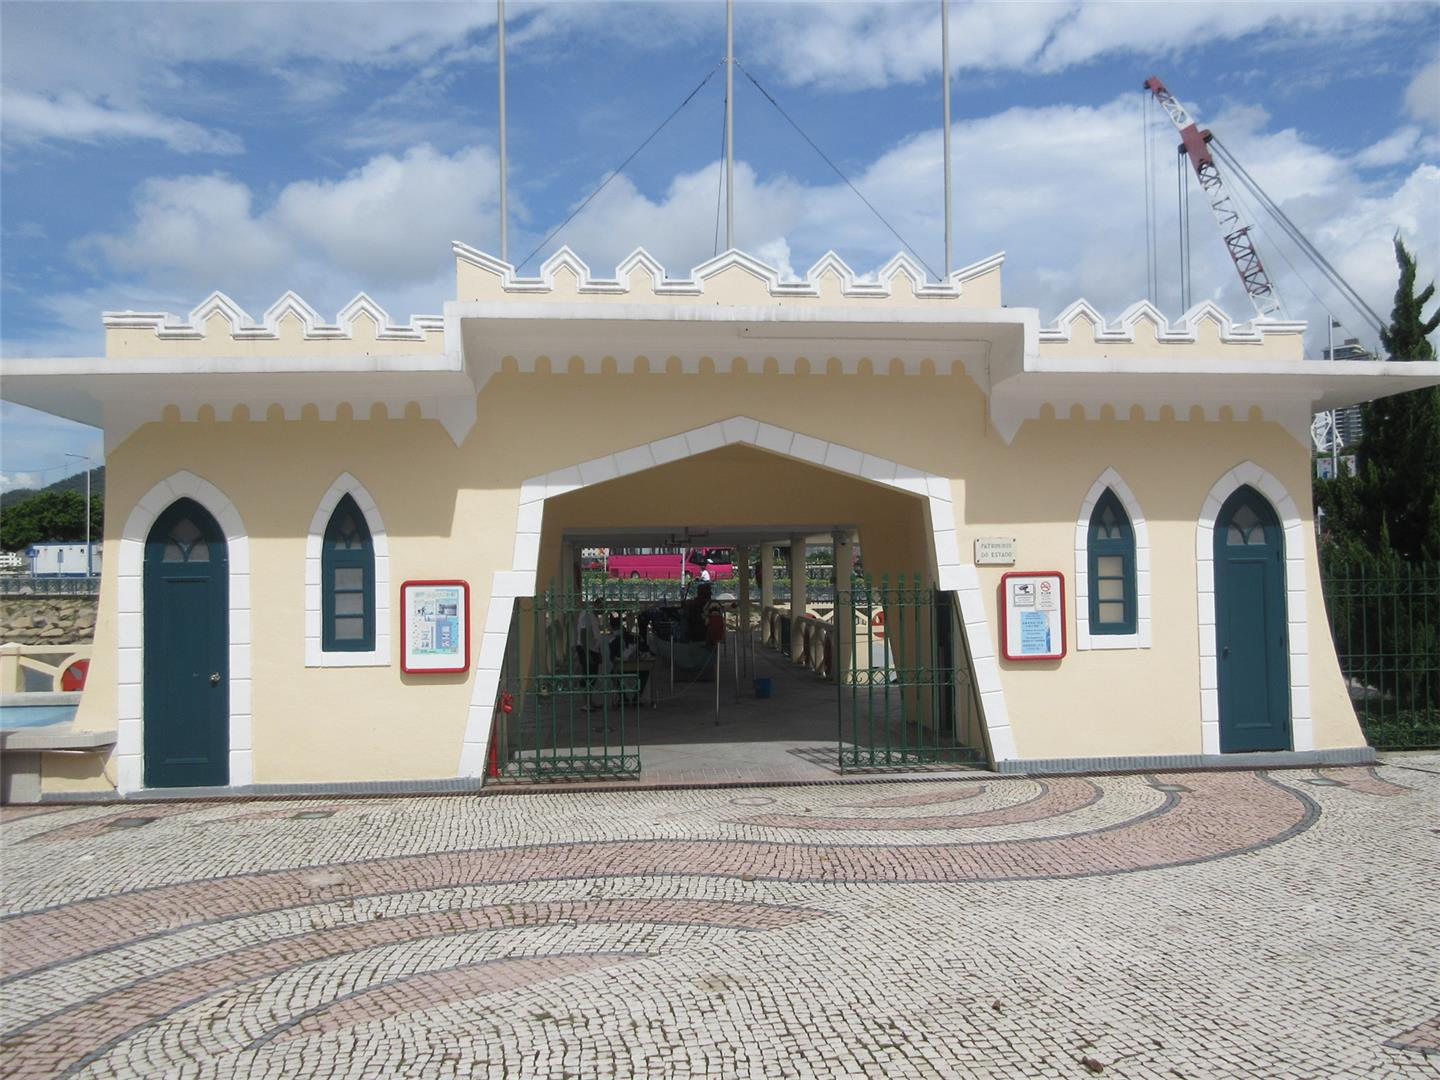 M33 Public toilet at Barra Dock for Sightseeing Boats